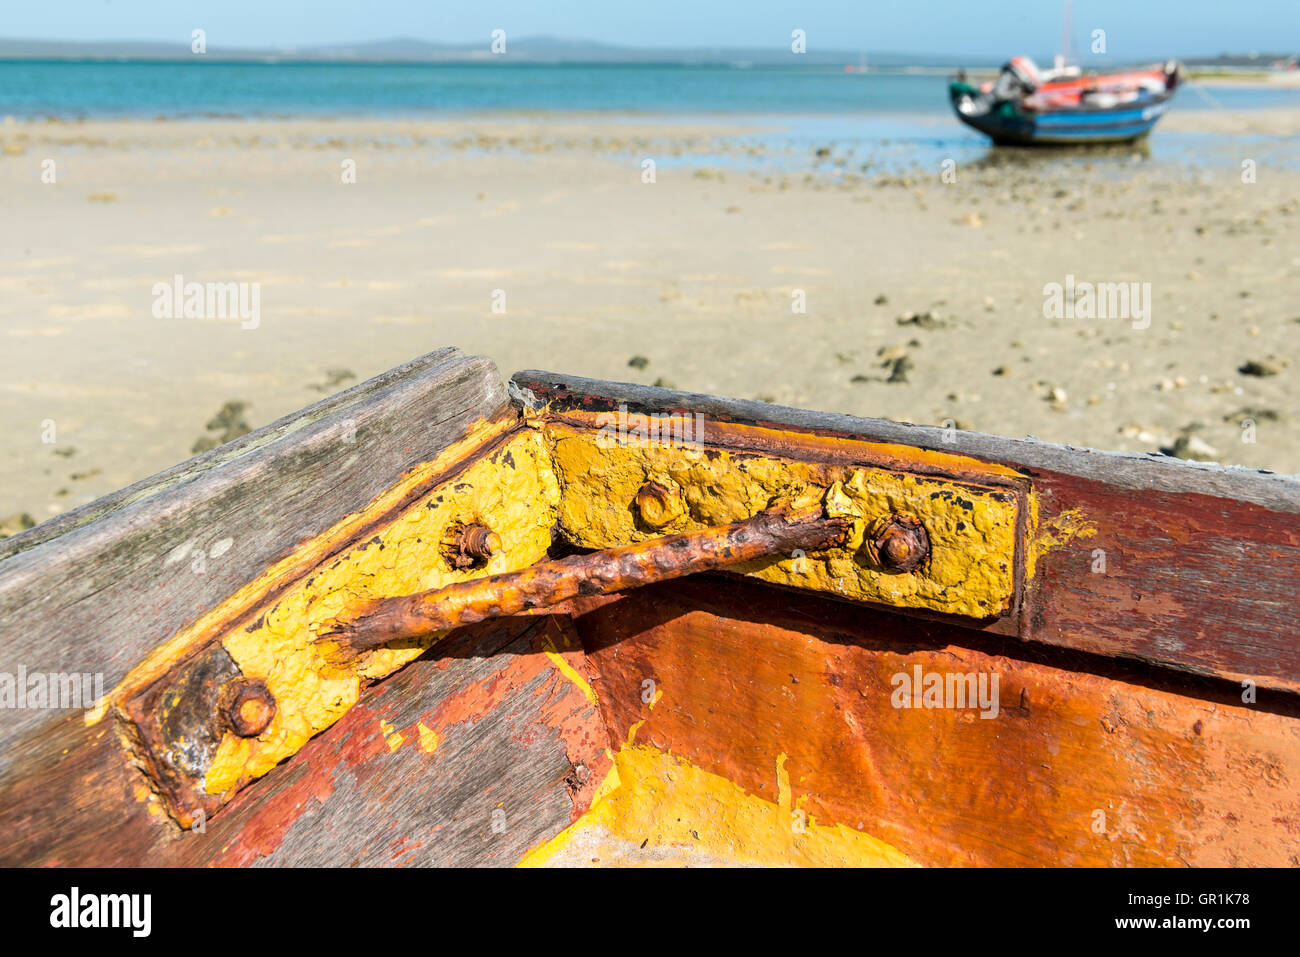 Closeup of corroded metal enforcement in a fishing boat, Churchhaven, West Coast National Park, South Africa Stock Photo